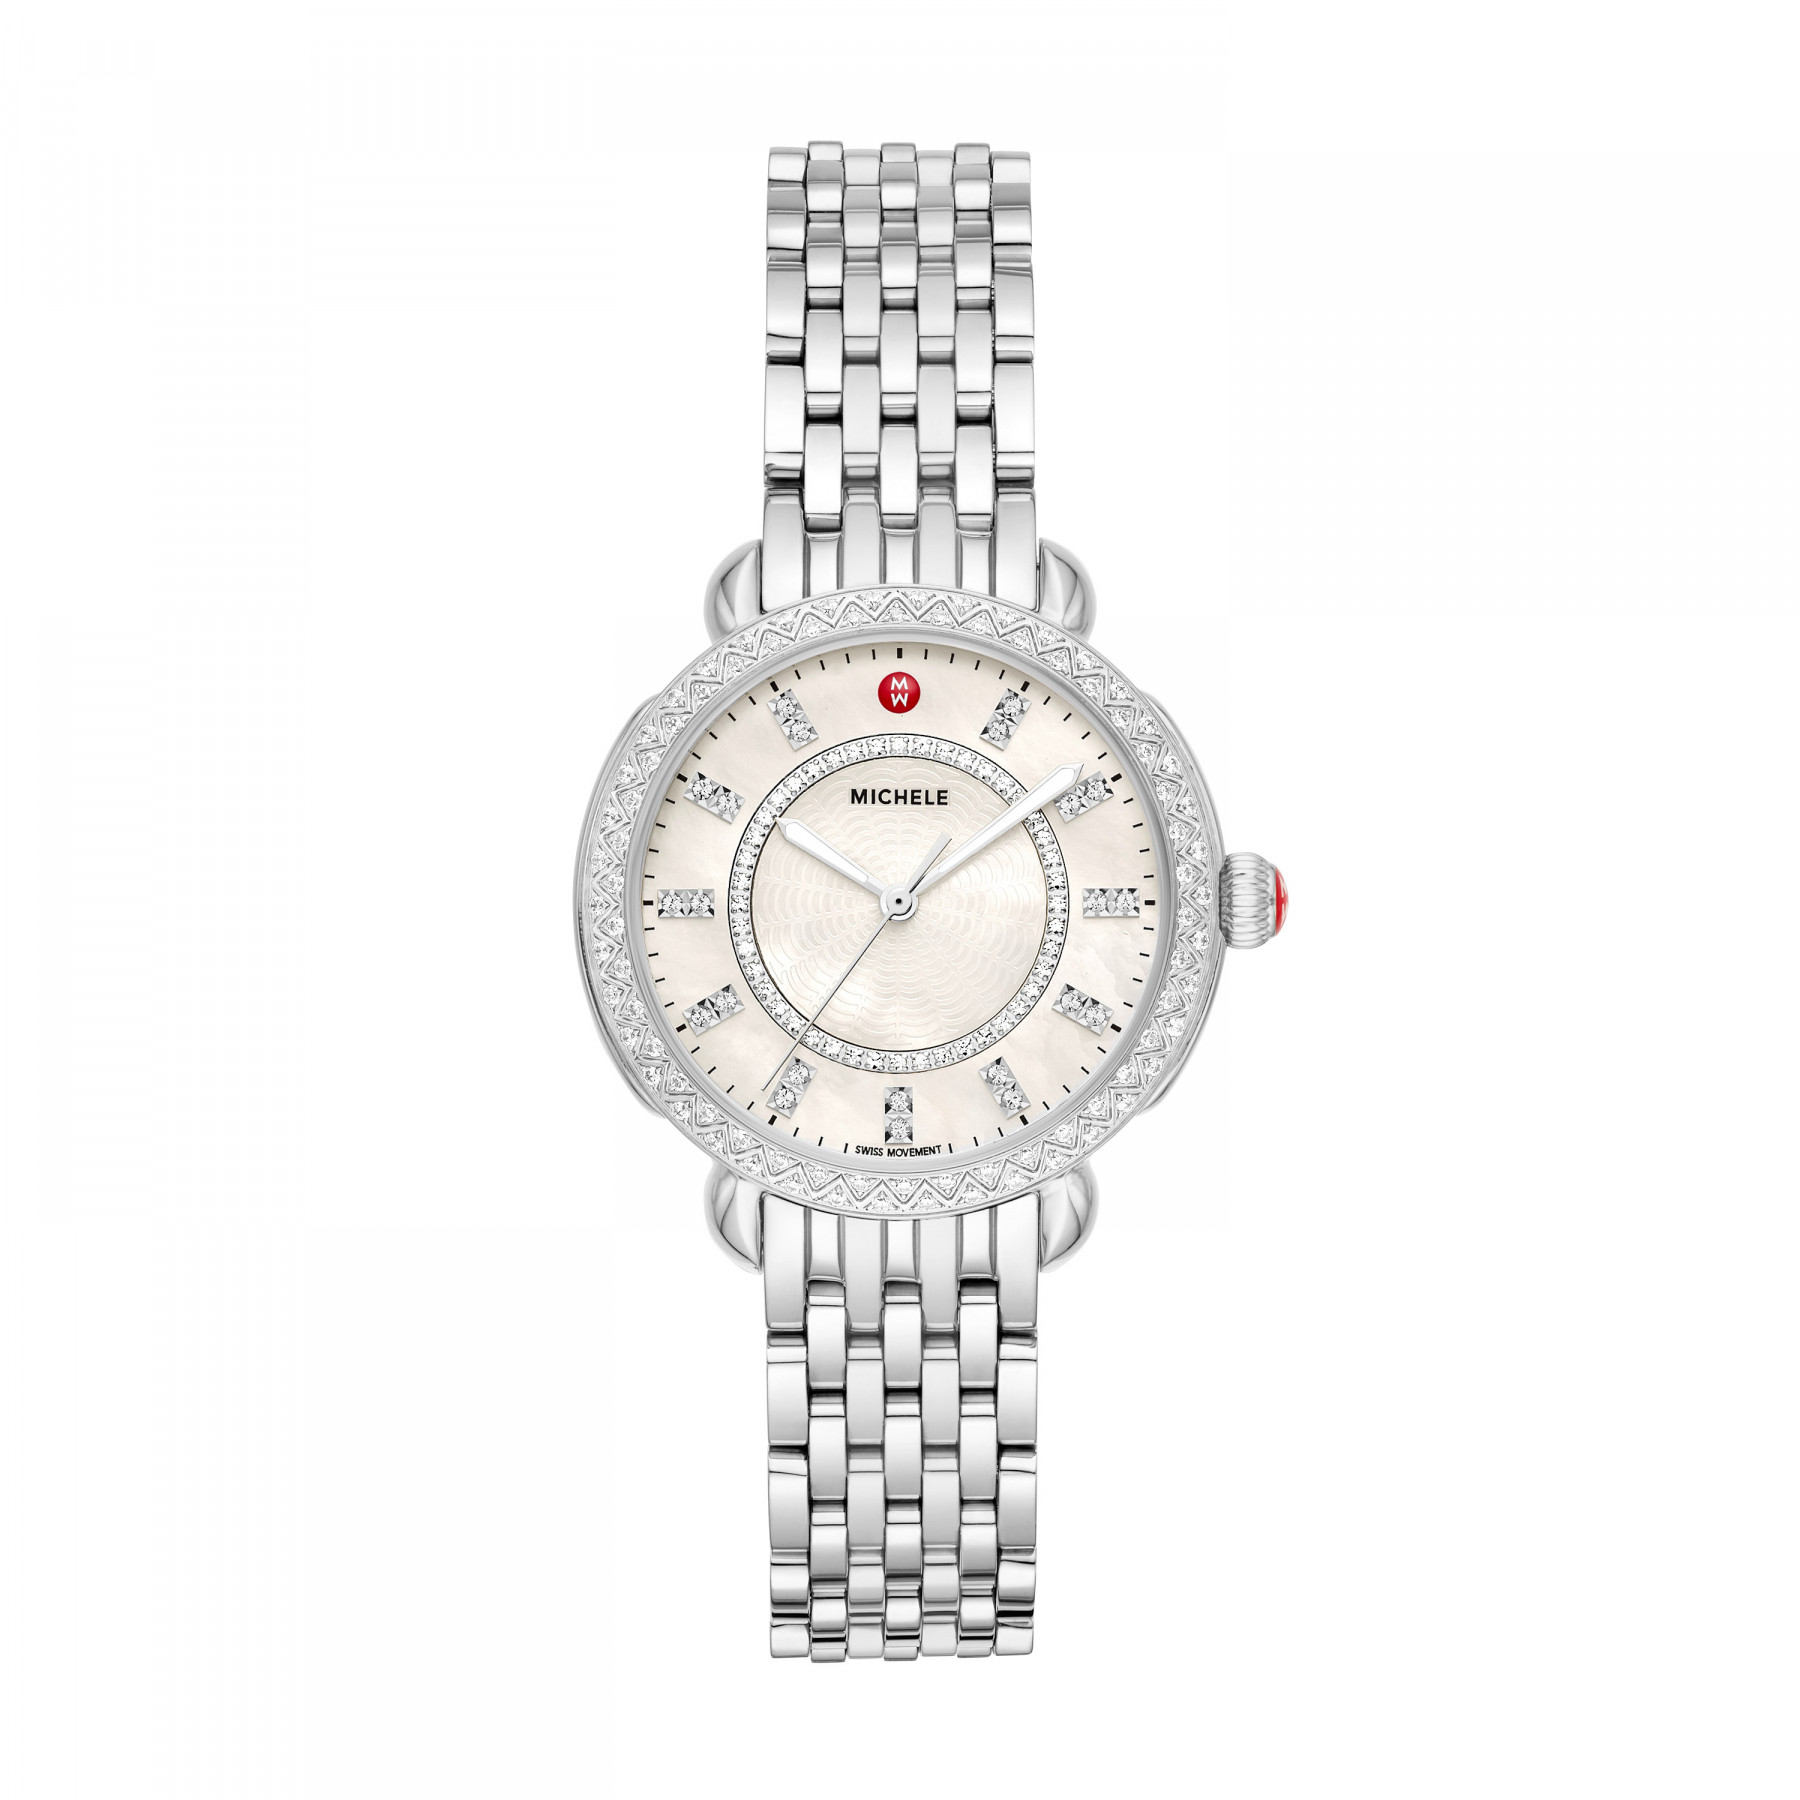 Michele Sidney Classic Round Steel Watch front view